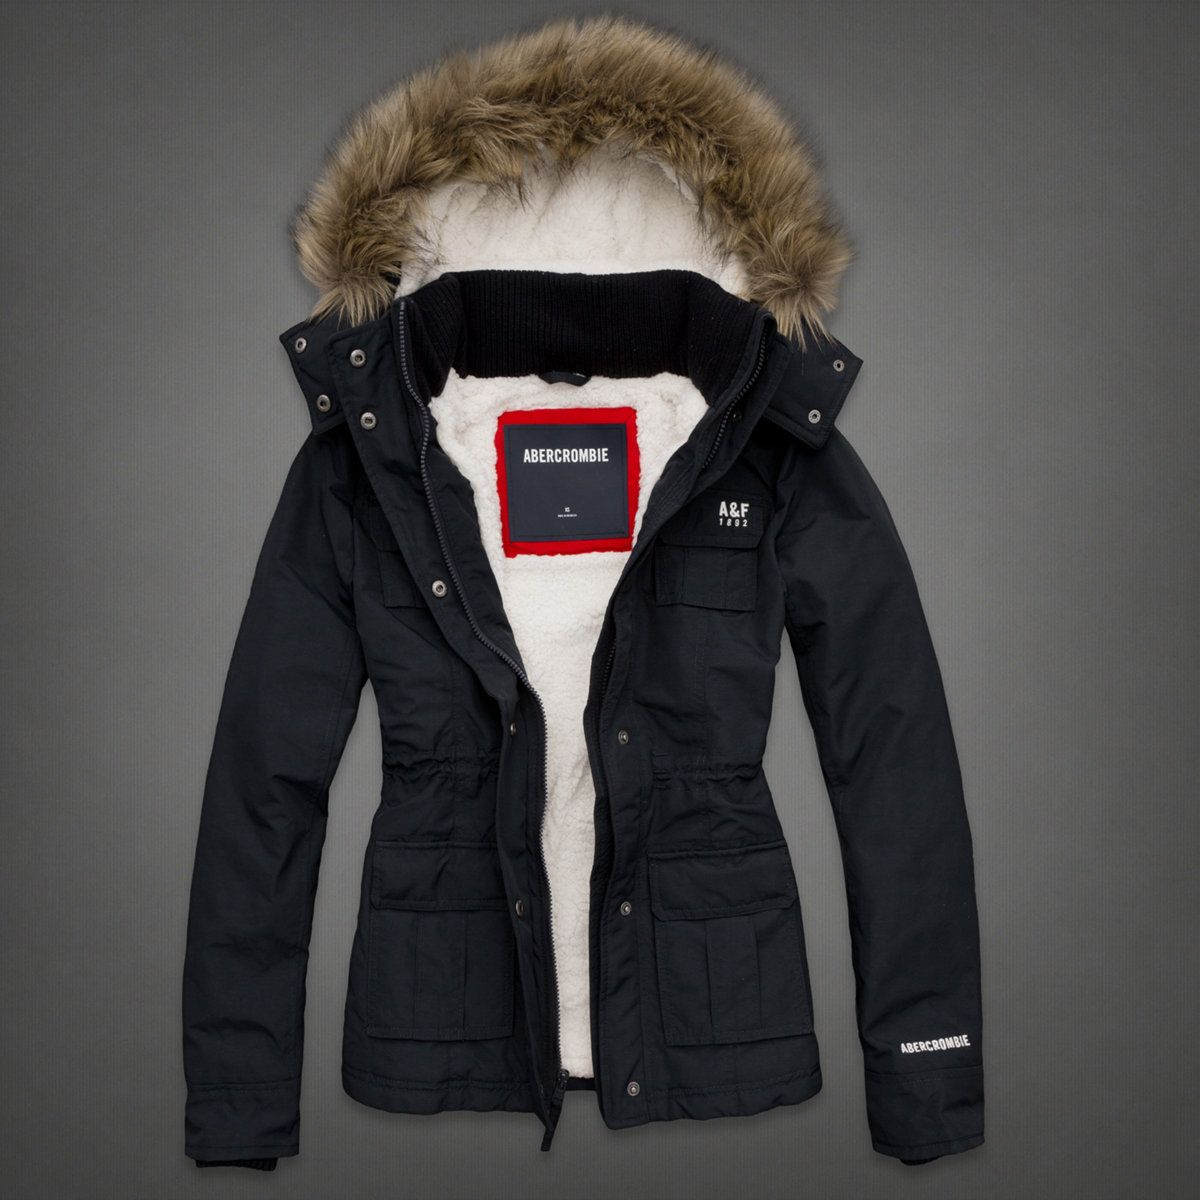 Womens A&f All-season Weather Warrior Parka | Womens New Arrivals ...